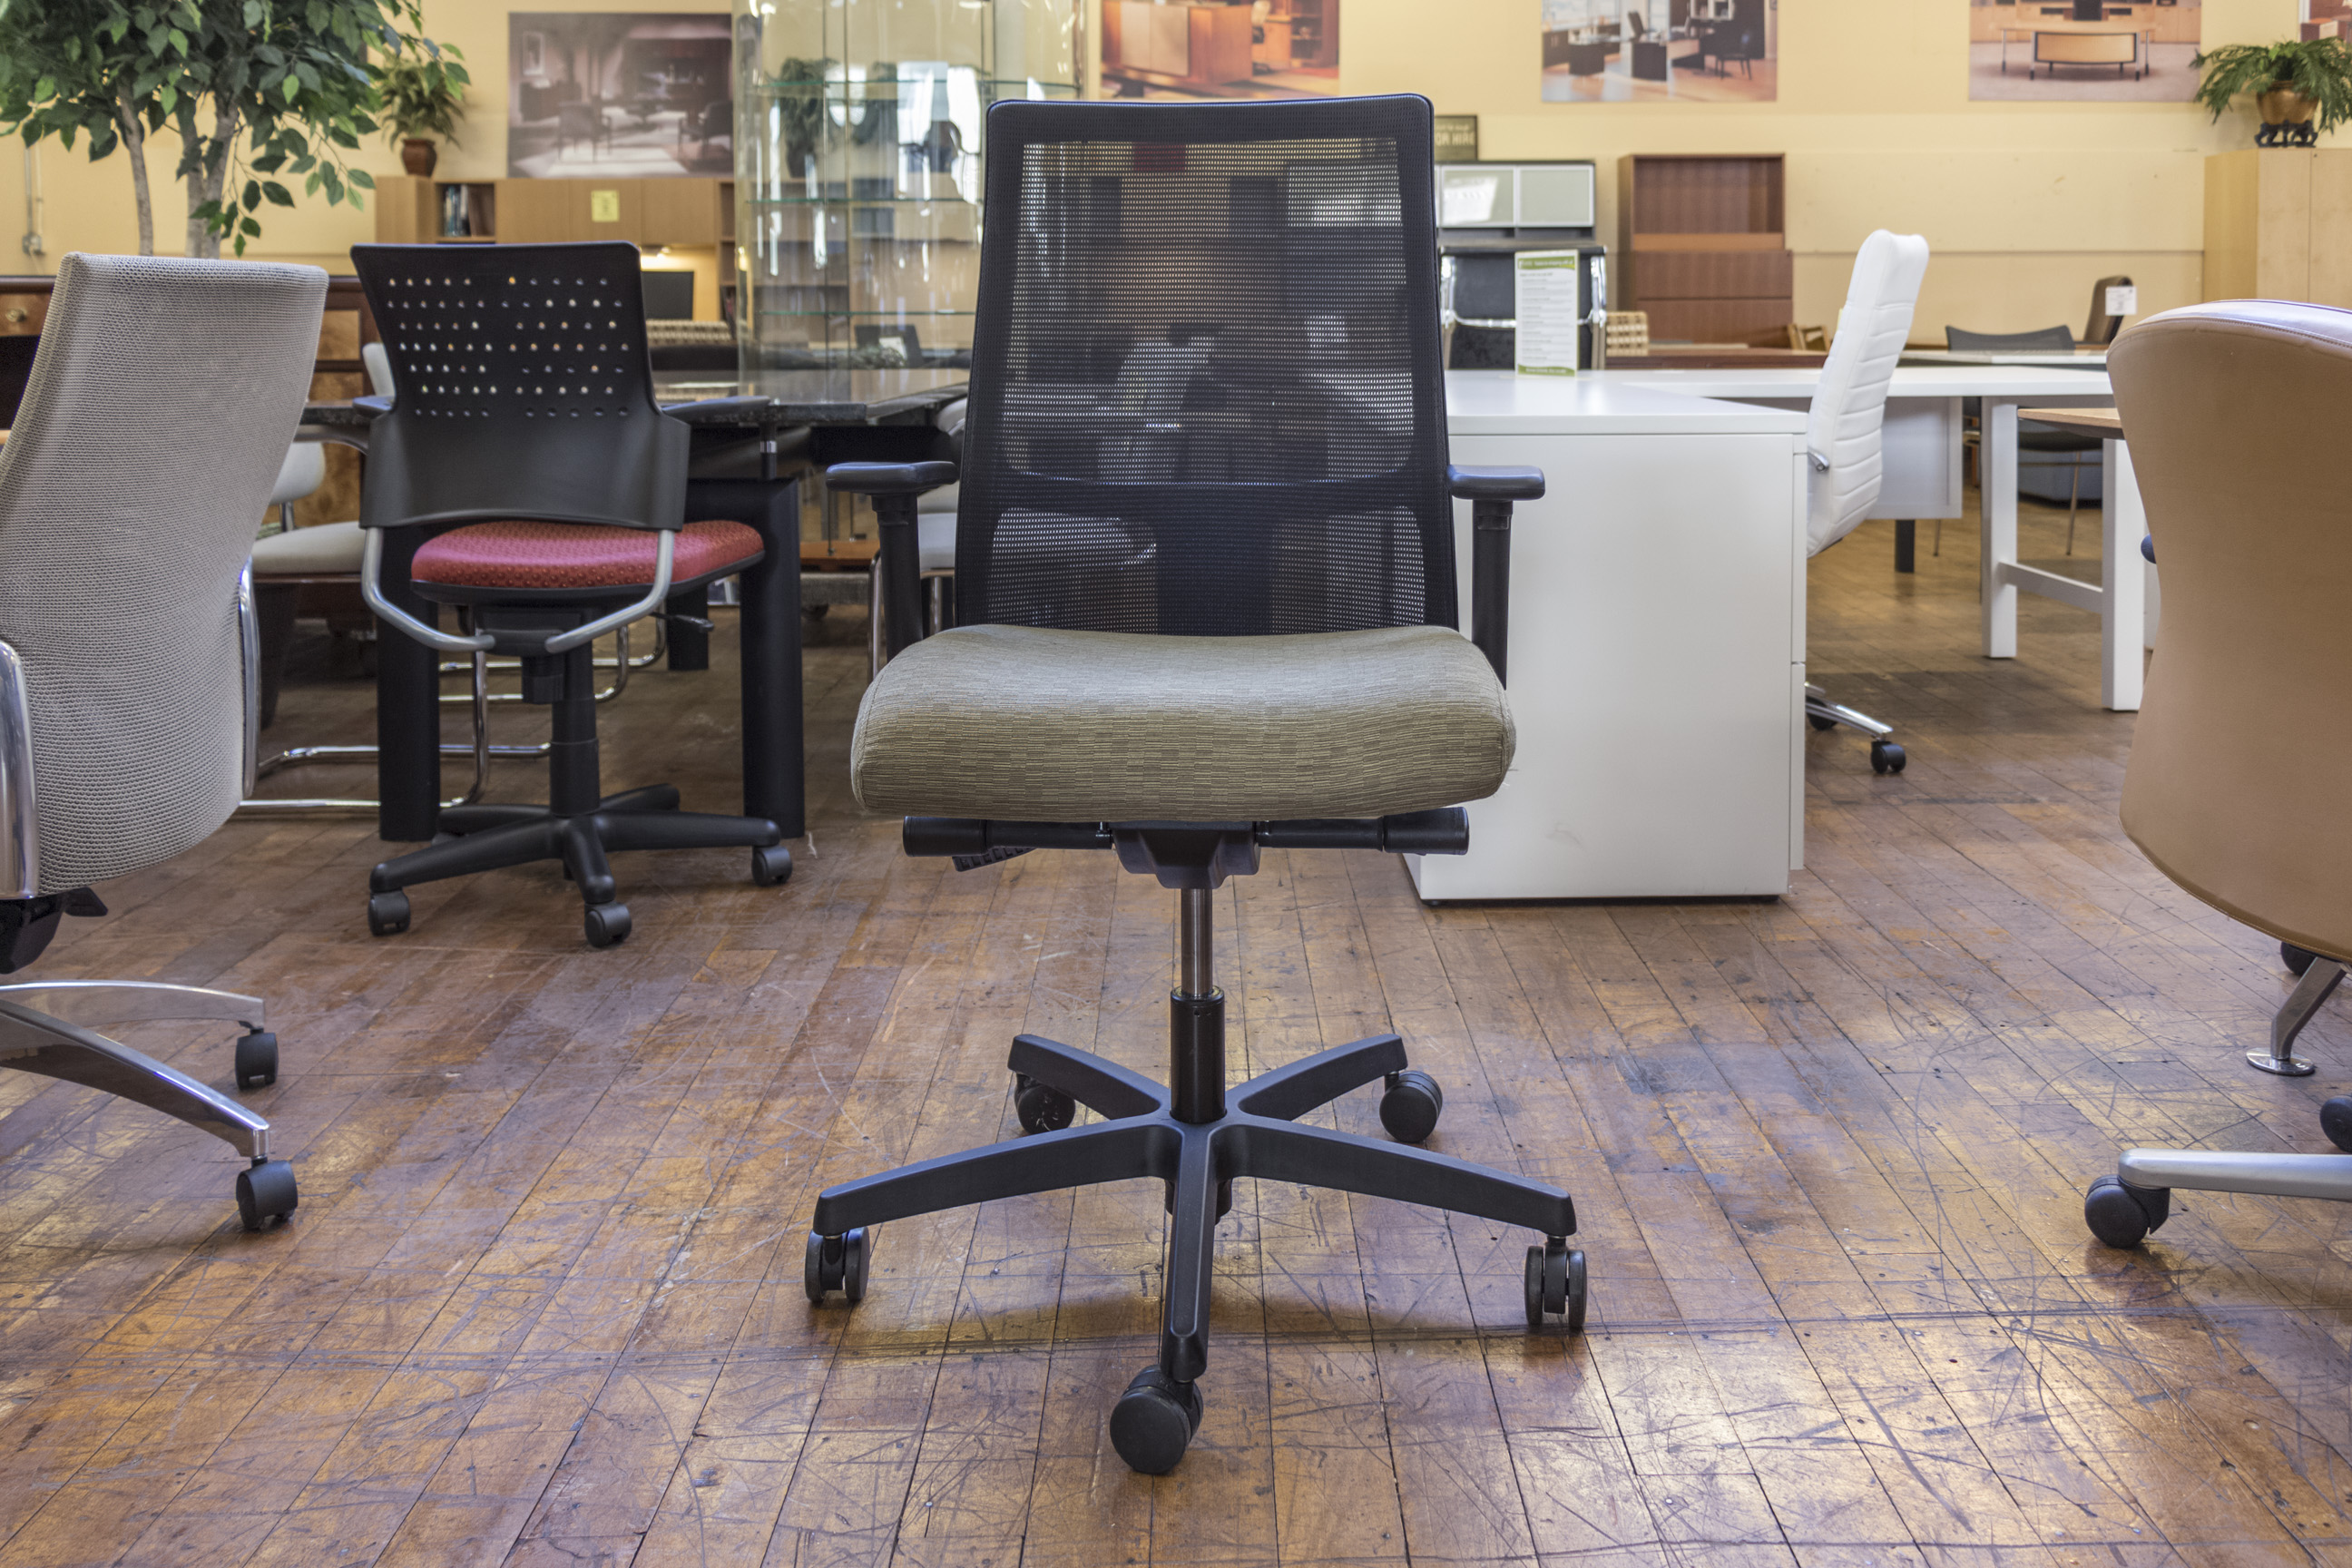 hon ignition task chairs u2022 peartree office furniture rh peartreeofficefurniture com Grape Vine peartree office furniture 35 tripp street